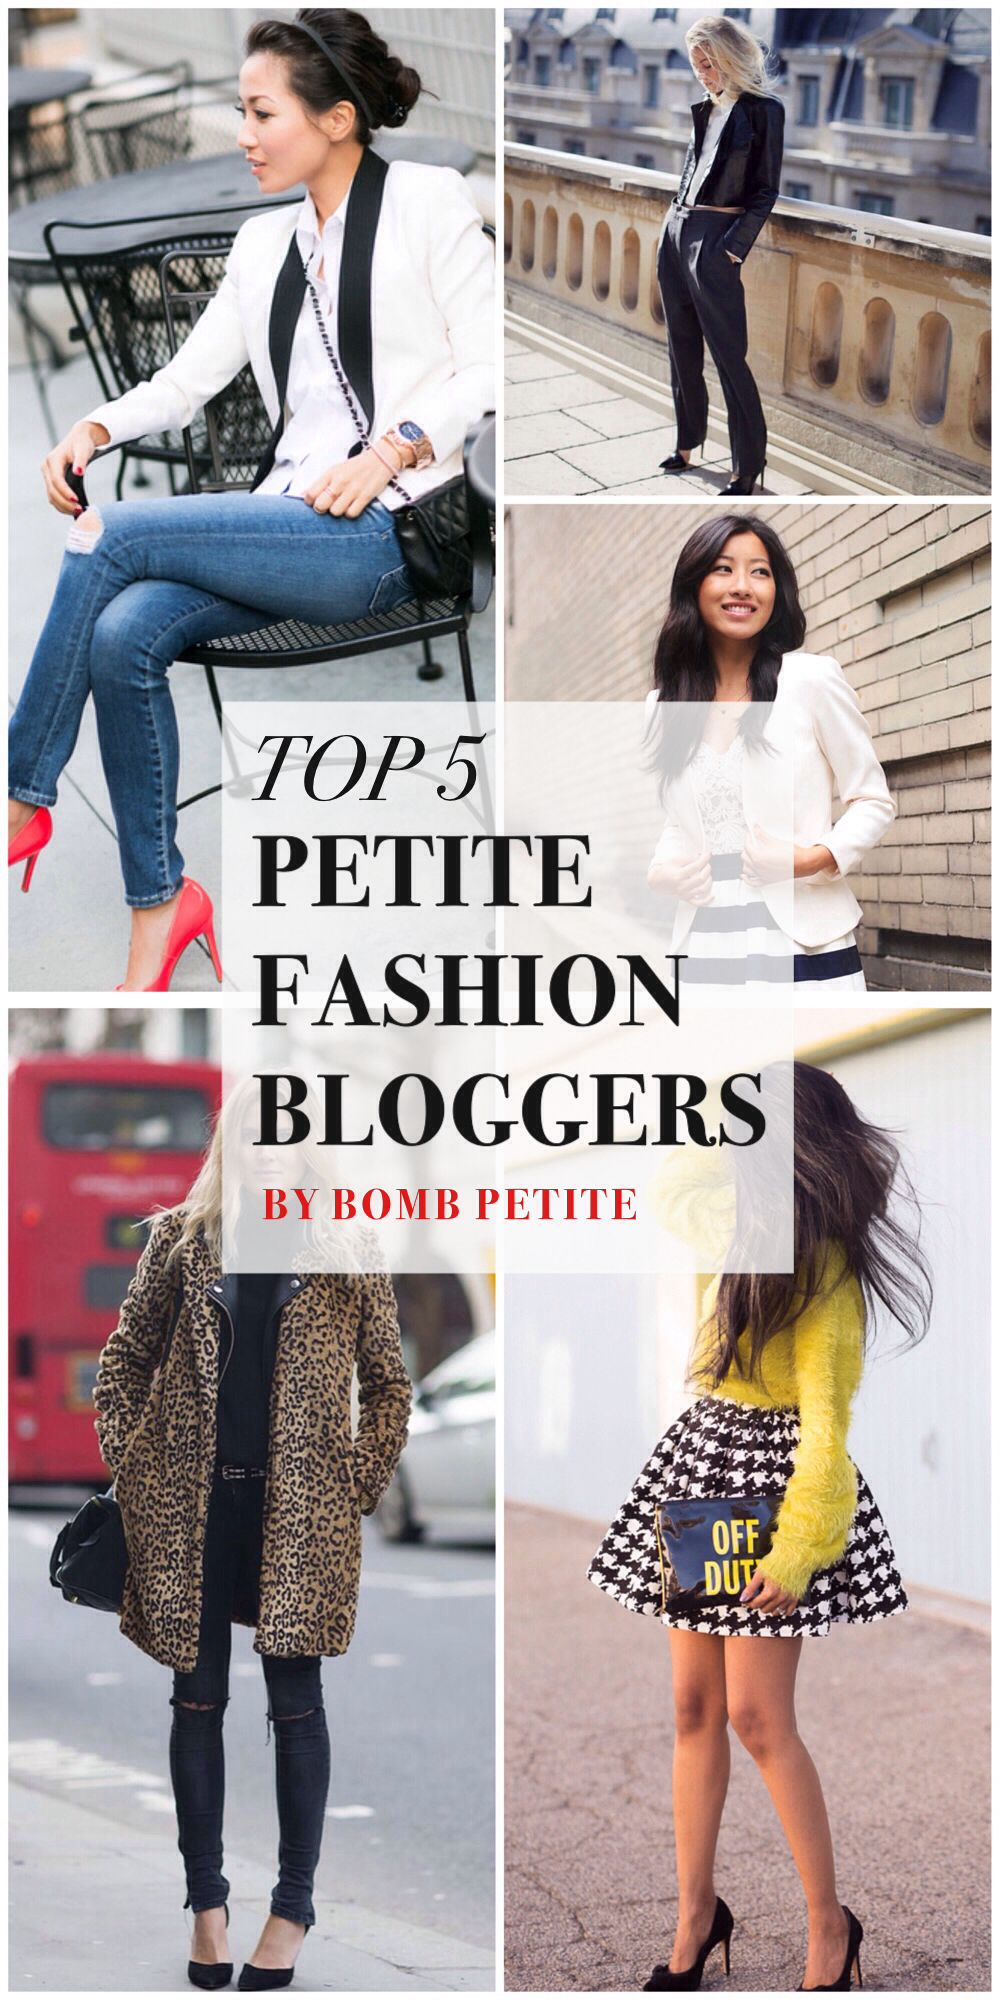 25e9745782d Style Inspiration: Top 5 Petite Fashion Bloggers | Styling Tips ...